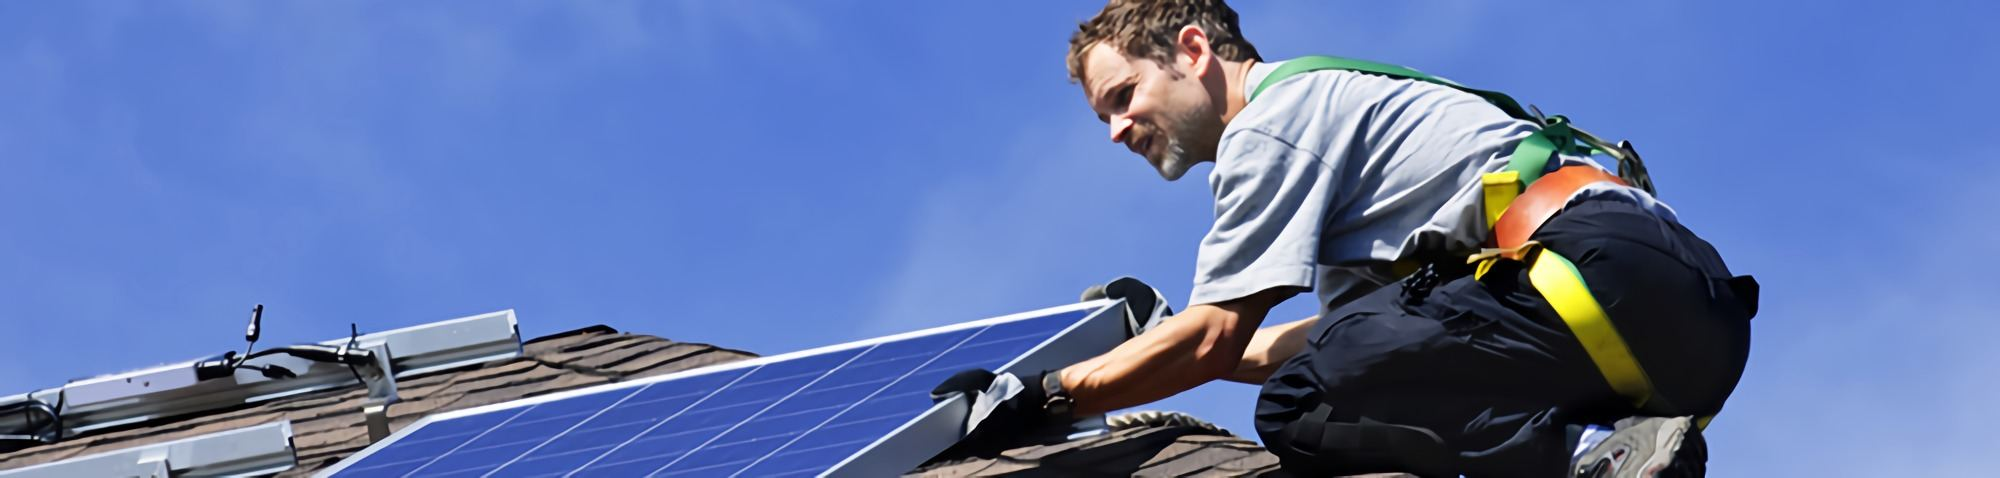 how to become a solar installer